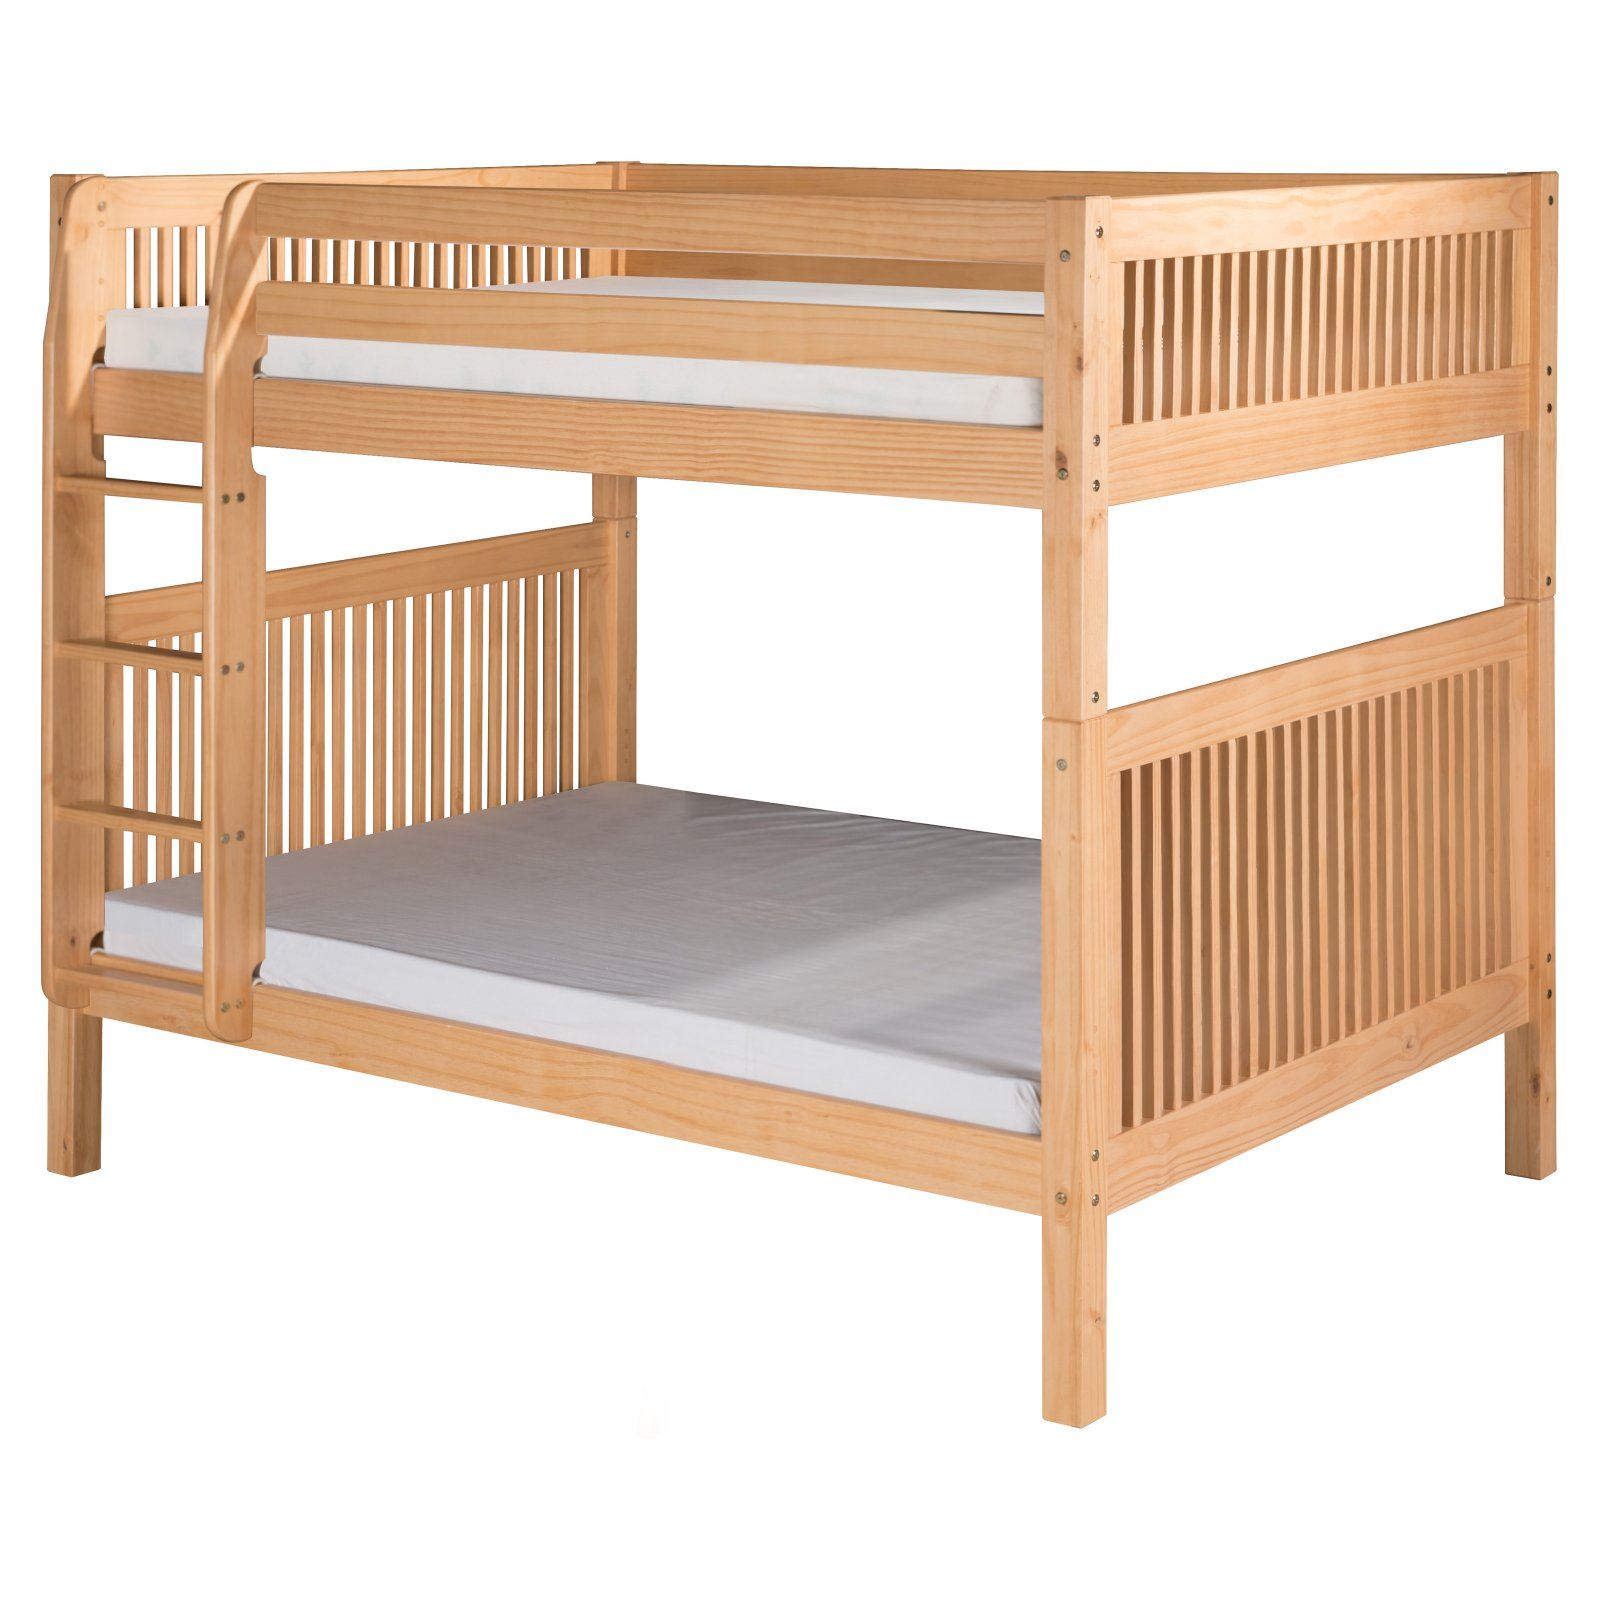 Camaflexi Full over Full Bunk Bed - Mission Headboard - Natural Finish